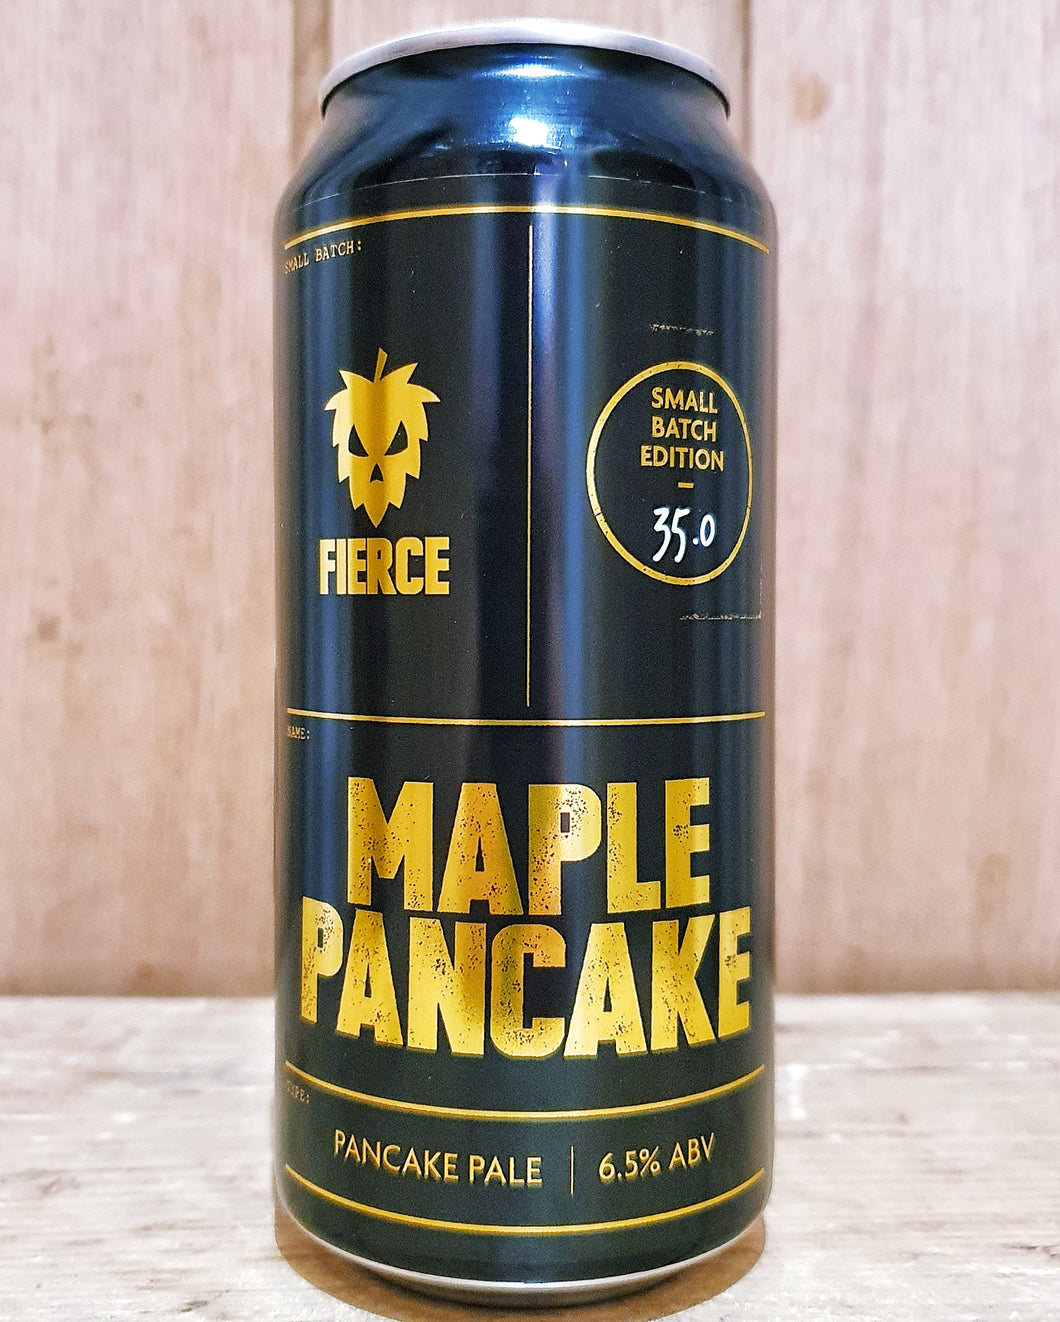 Fierce Beer - Maple Pancake Pale Ale